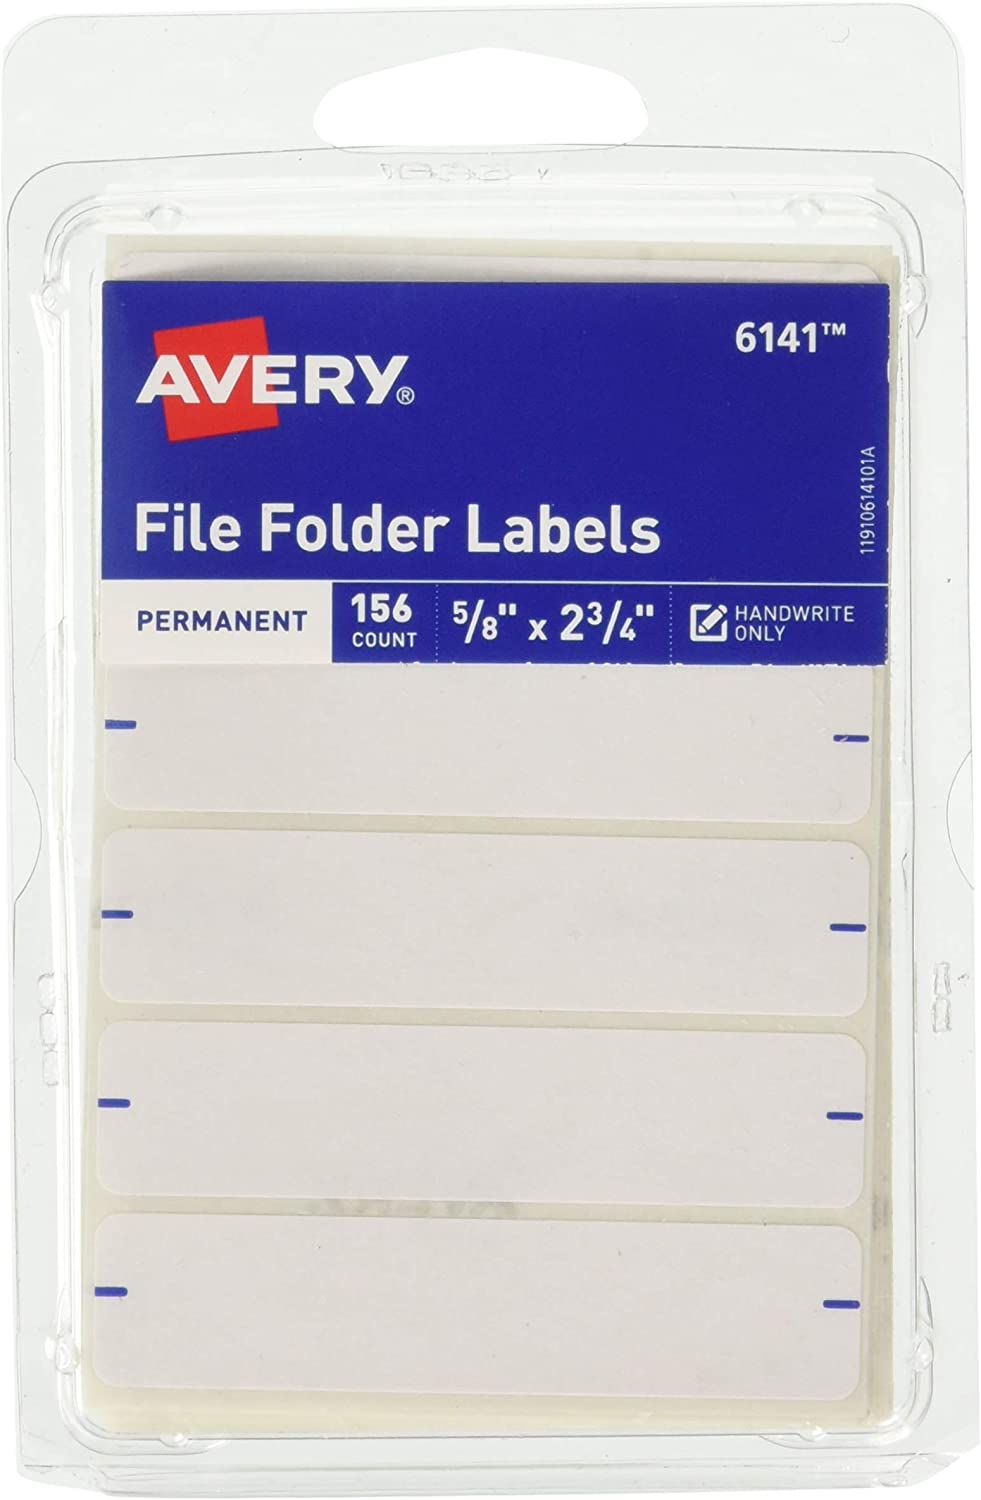 Avery Permanent File Folder Labels 2.75 x 0.625 Inches, White 156 labels : All Purpose Labels : Office Products